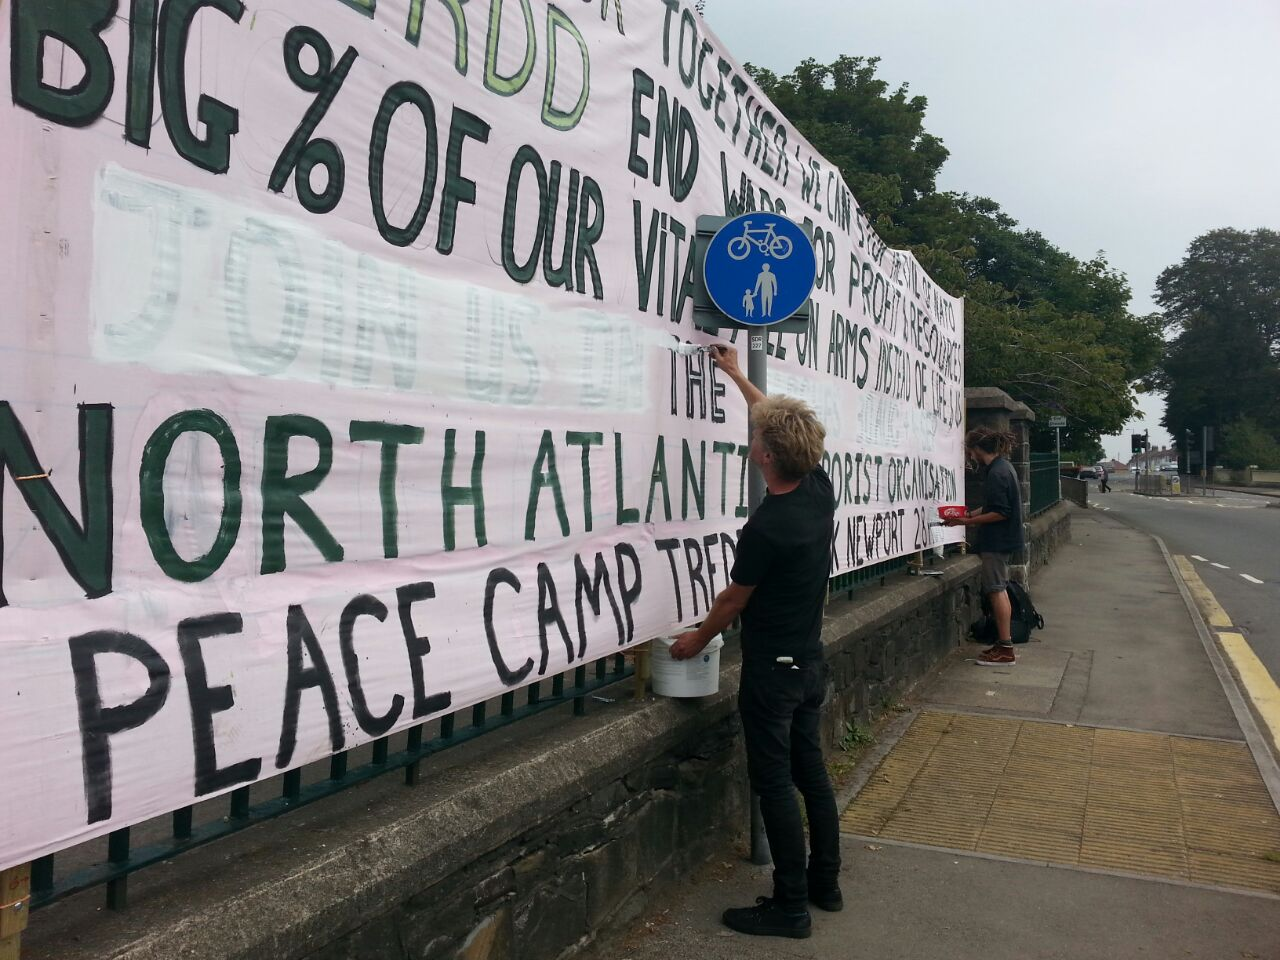 Representatives of the Stop Nato group spoke to IBTimes UK at the 'Peace Camp' in Tredegar Part outside Newport